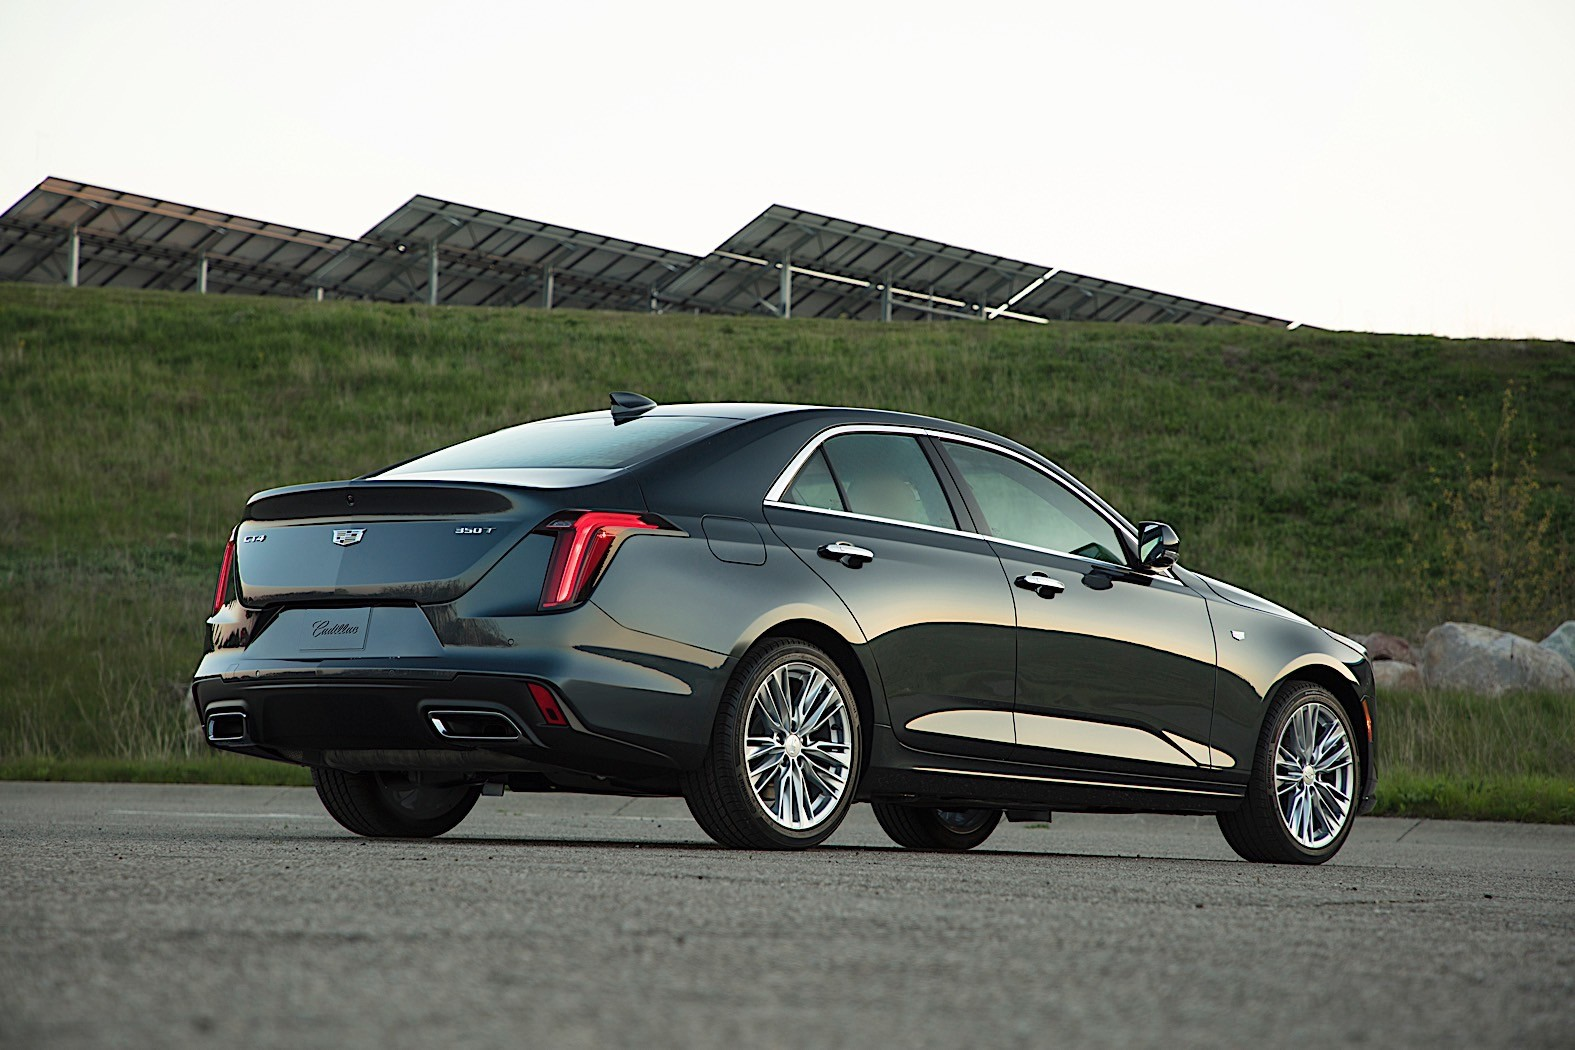 2021 Cadillac CT4-V Blackwing Expected With Twin-Turbo V6 ...